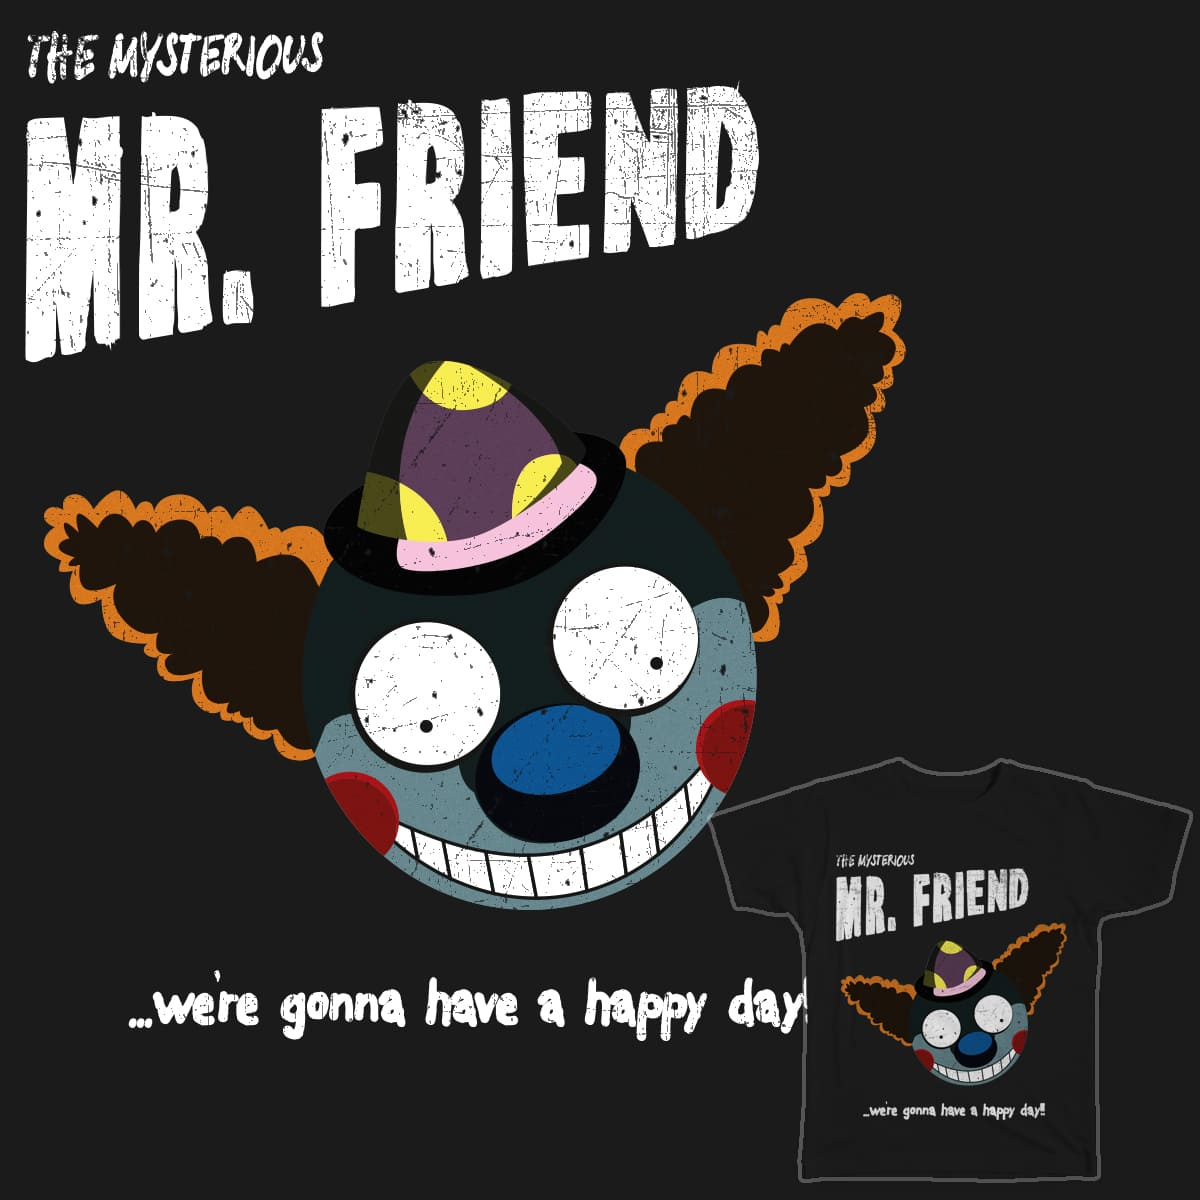 The Mysterious Mr. F(r)eind by Flower Bean on Threadless